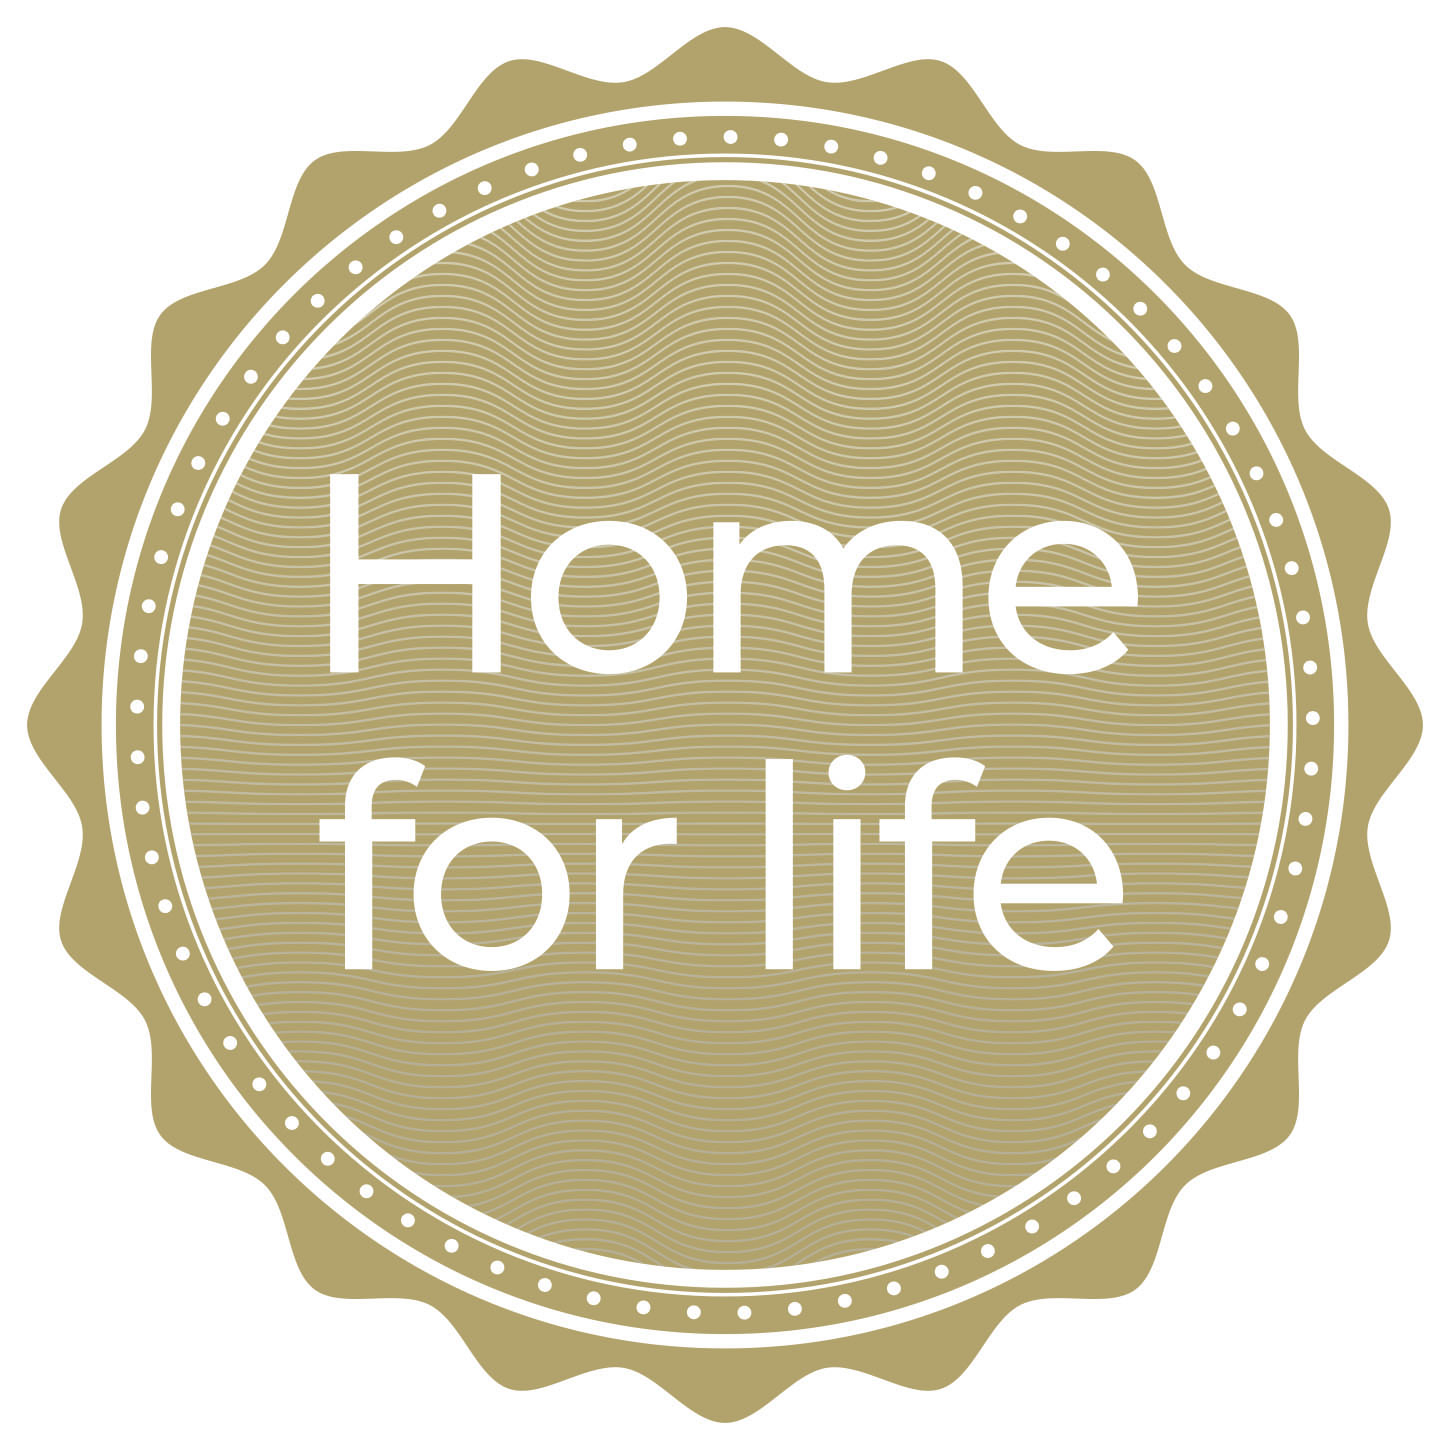 Home for life promise